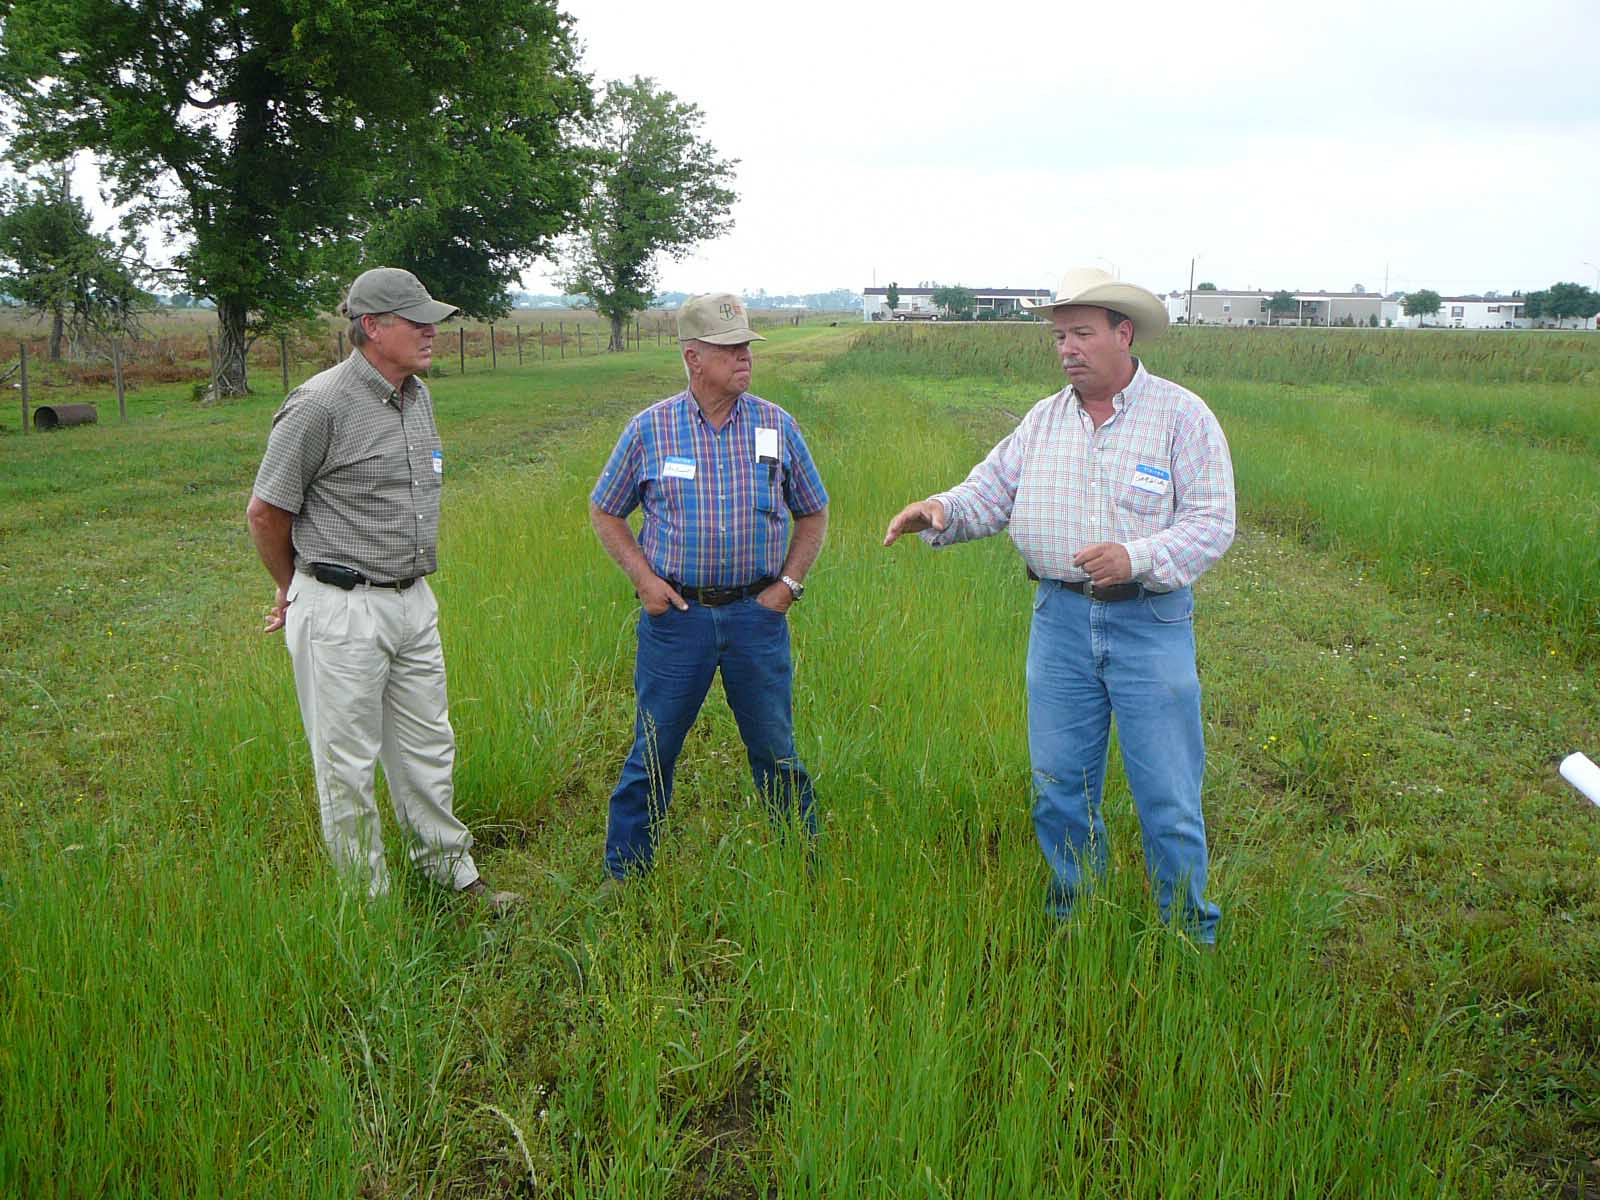 Producers Given Tips On Controlling Weeds In Pastures During Model Farm Field Day